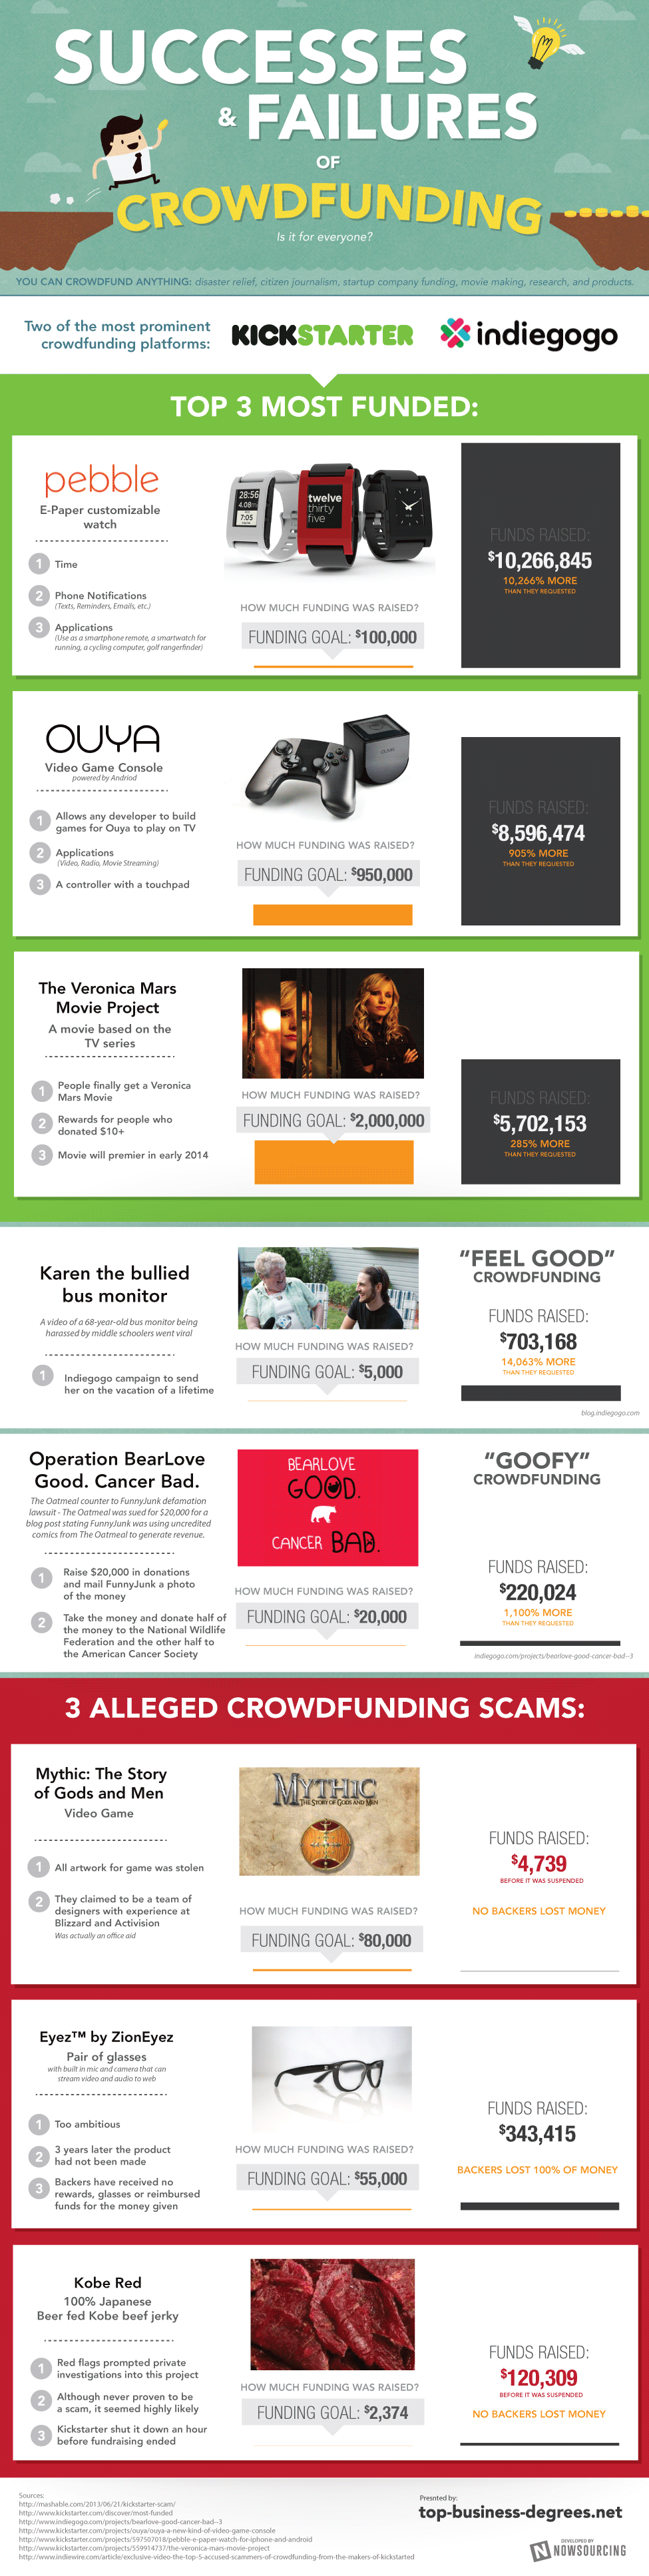 Successes and Failures of Crowdfunding